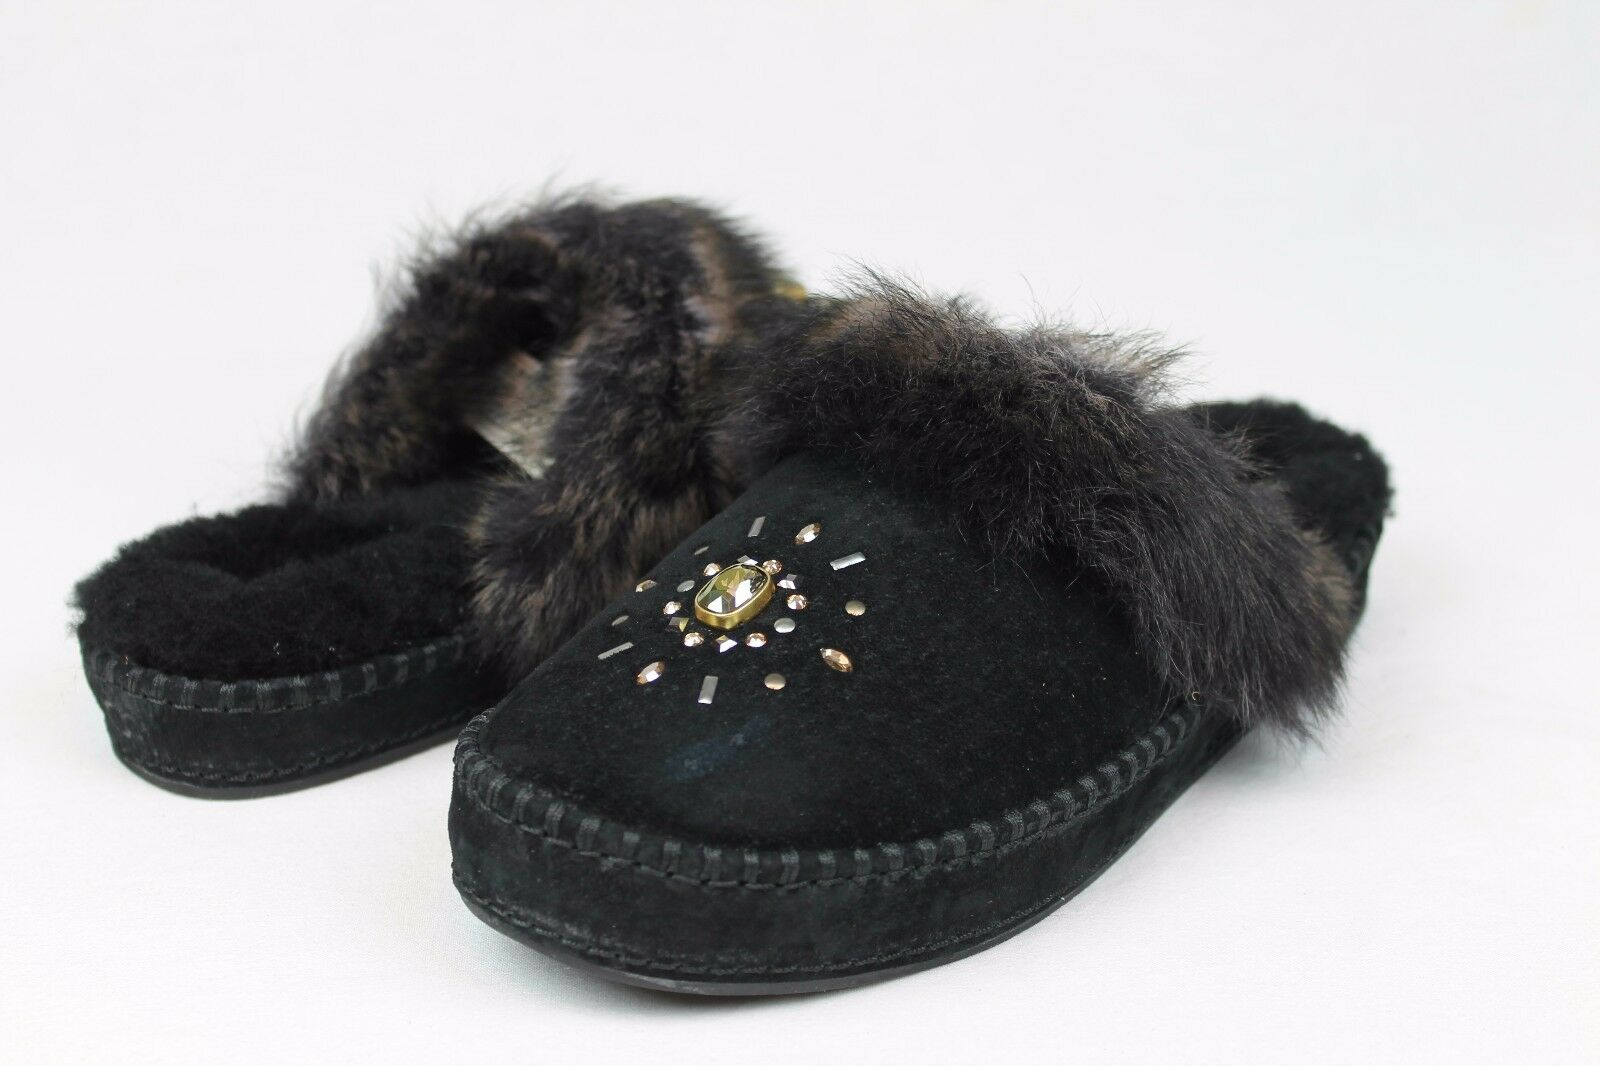 ce2f1f4aa35 UGG Australia Aira Crystals Suede Sheepskin Black Slippers Womens Size 5 US